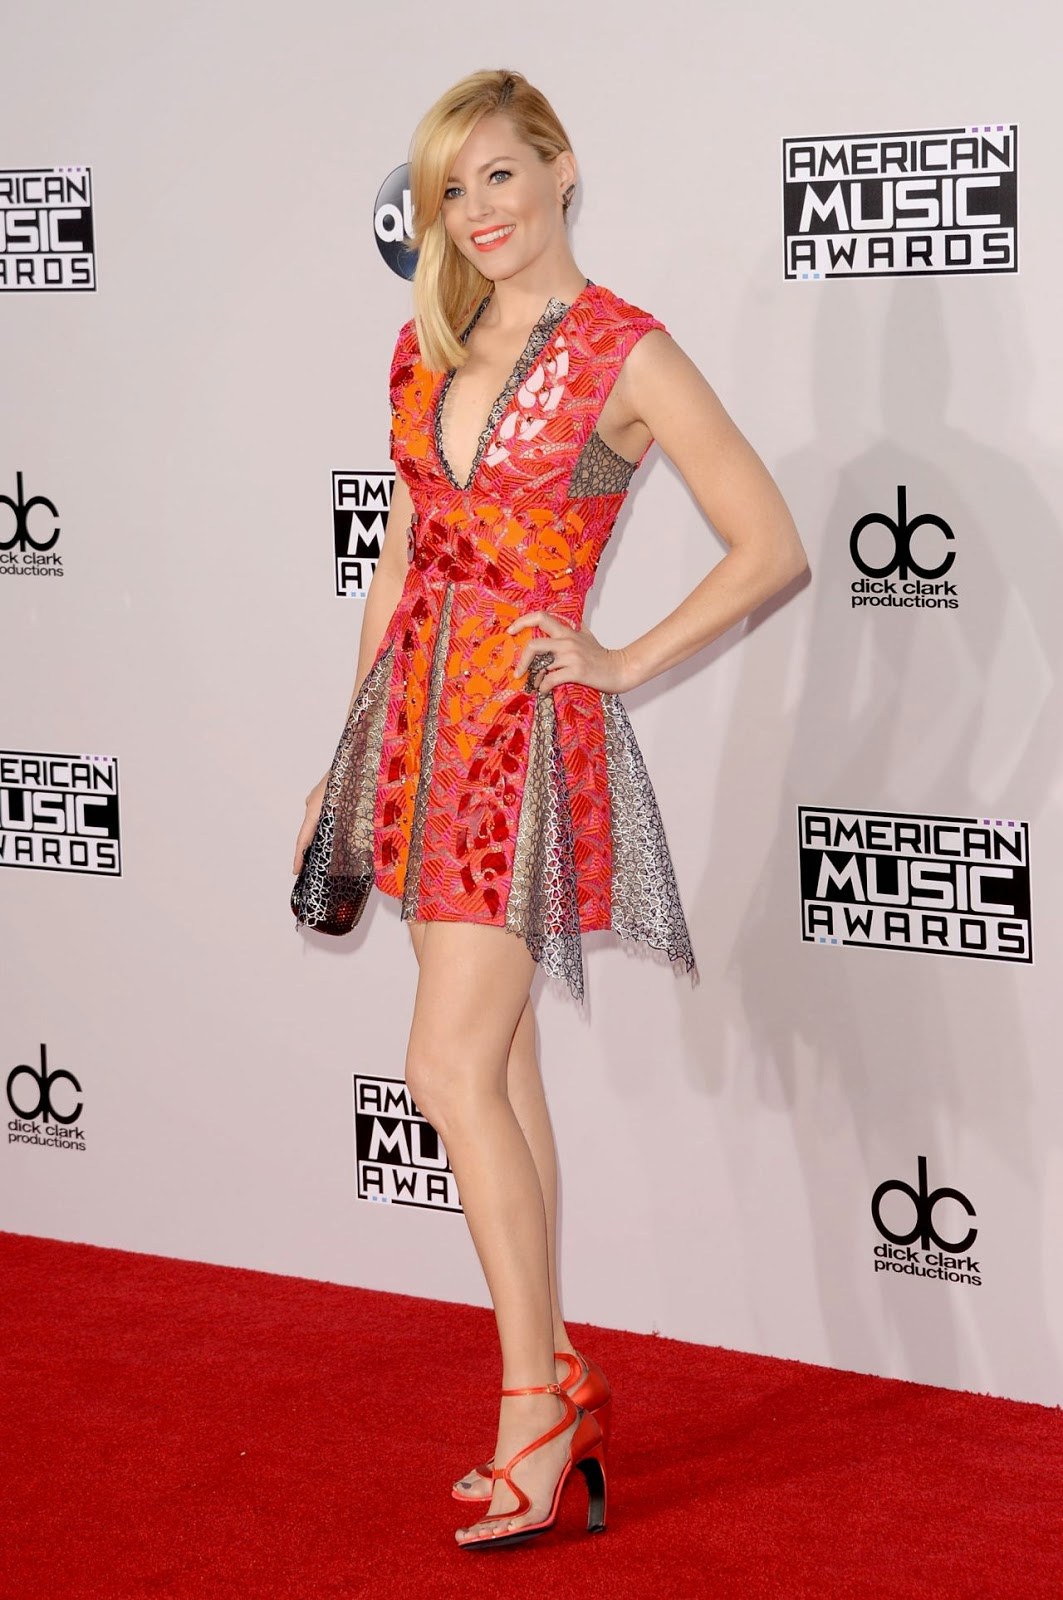 Elizabeth Banks wears a bold Peter Pilotto mini dress at the 2014 American Music Awards